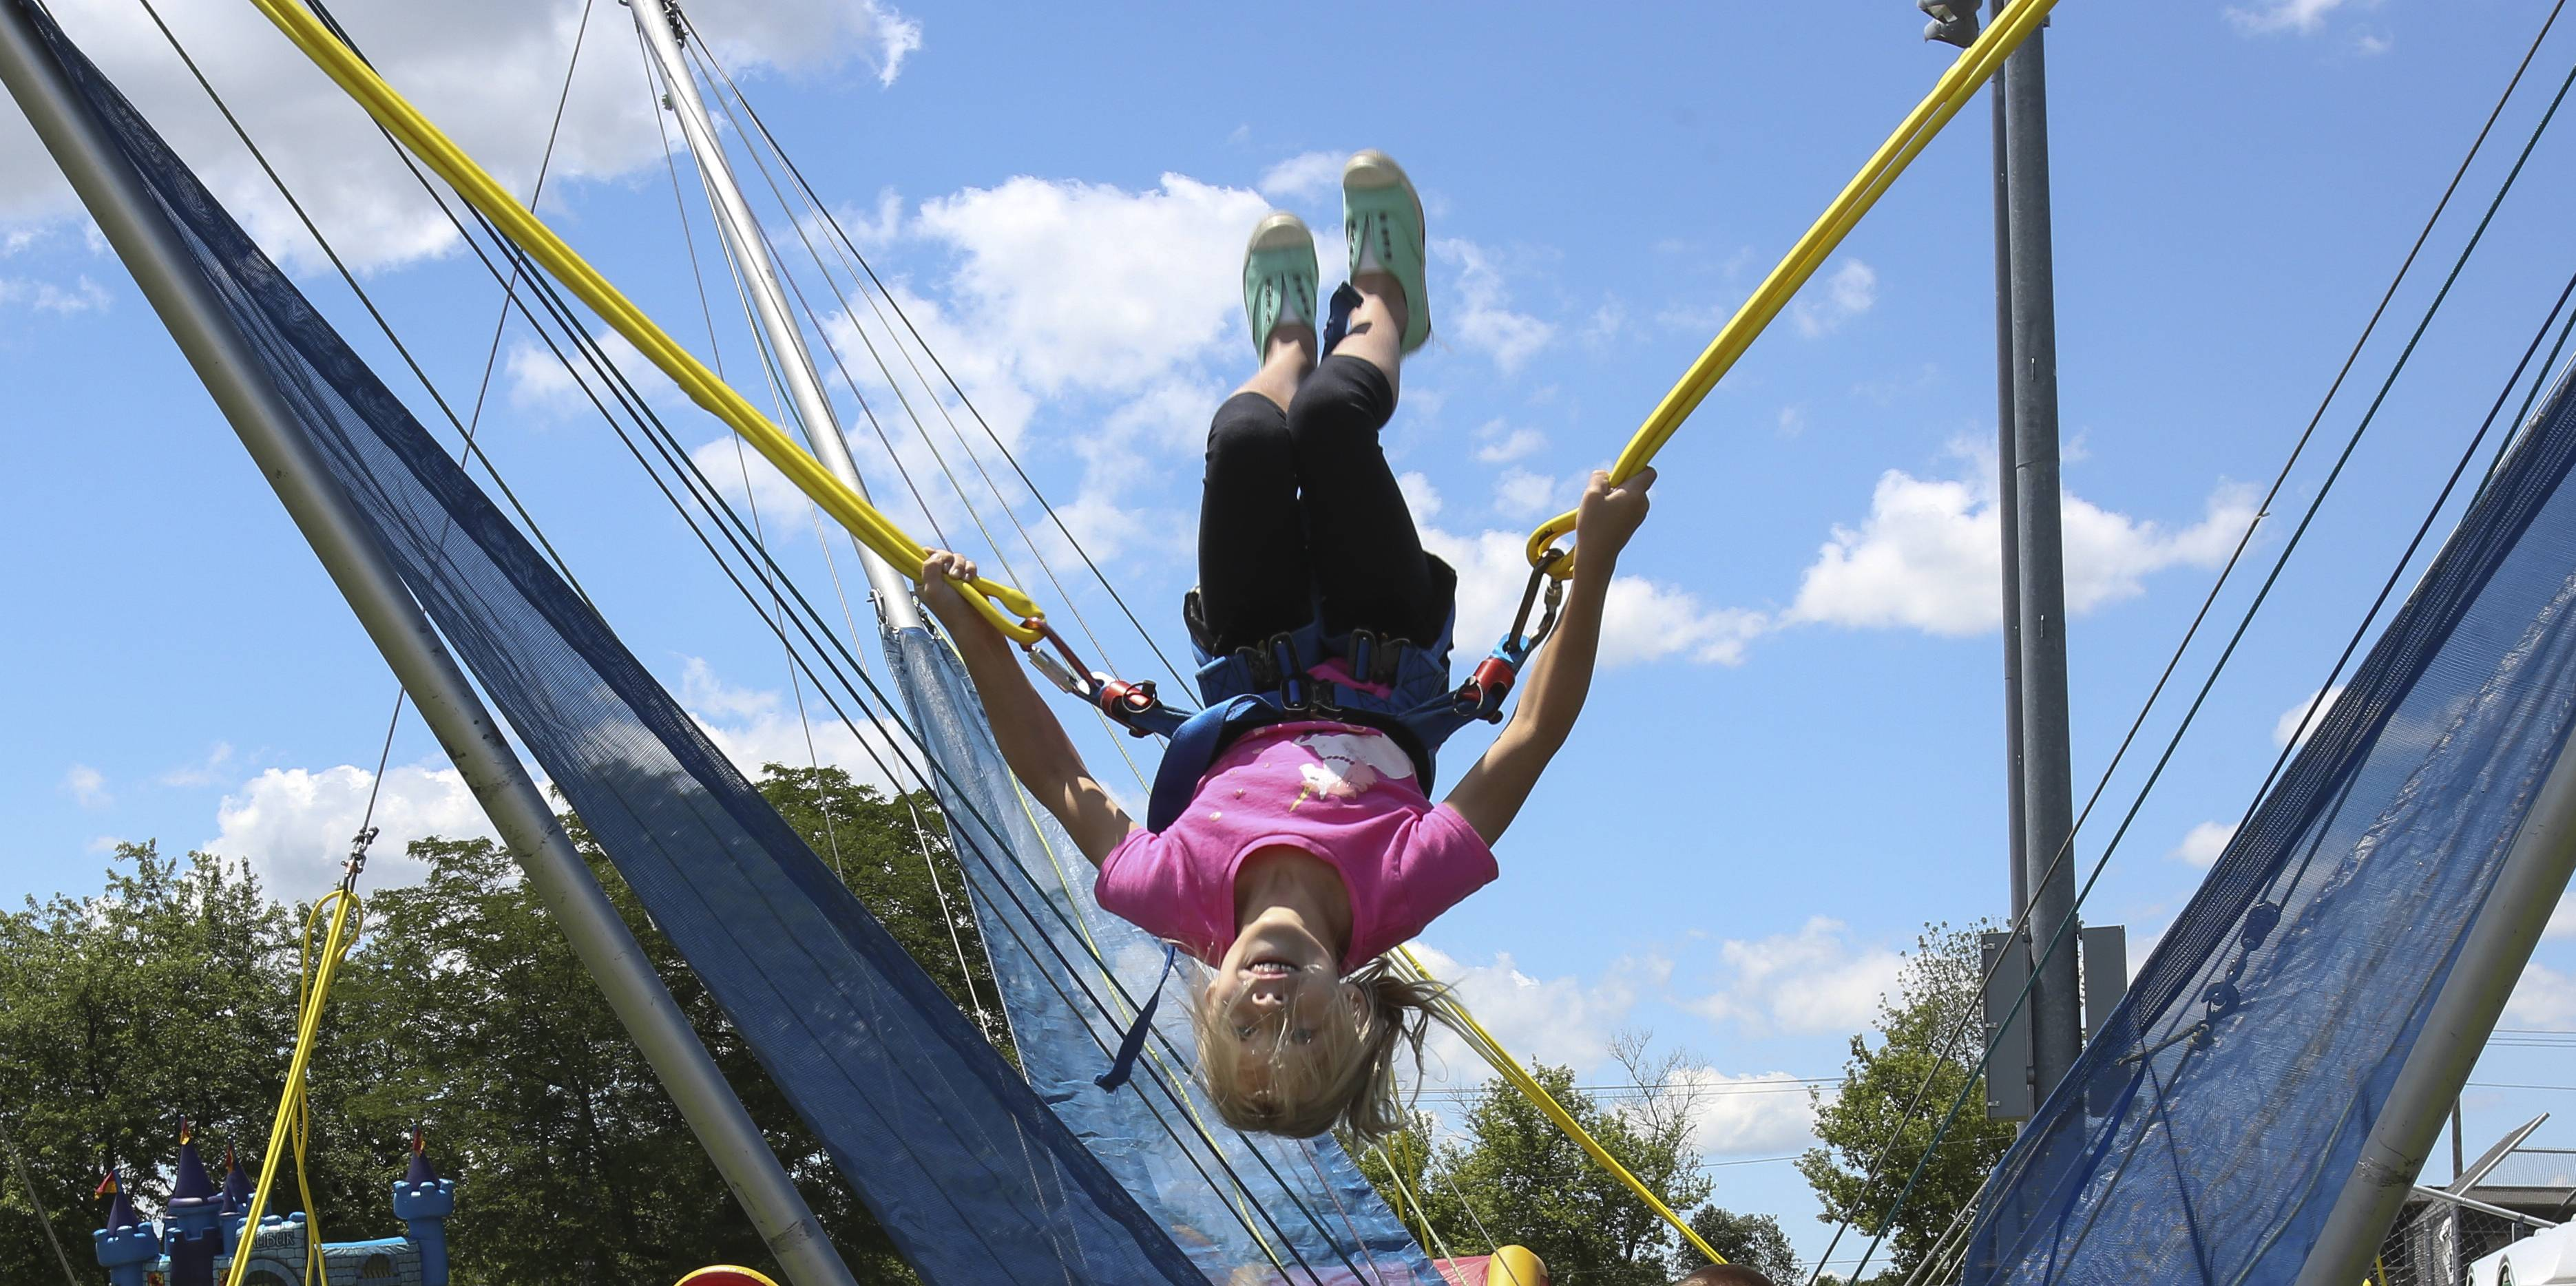 Lauren Jaskier, 7, of Lombard, tries out her gymnastics skills Thursday on the Euro Bungee during the opening day of the Naperville Exchange Club's Ribfest.